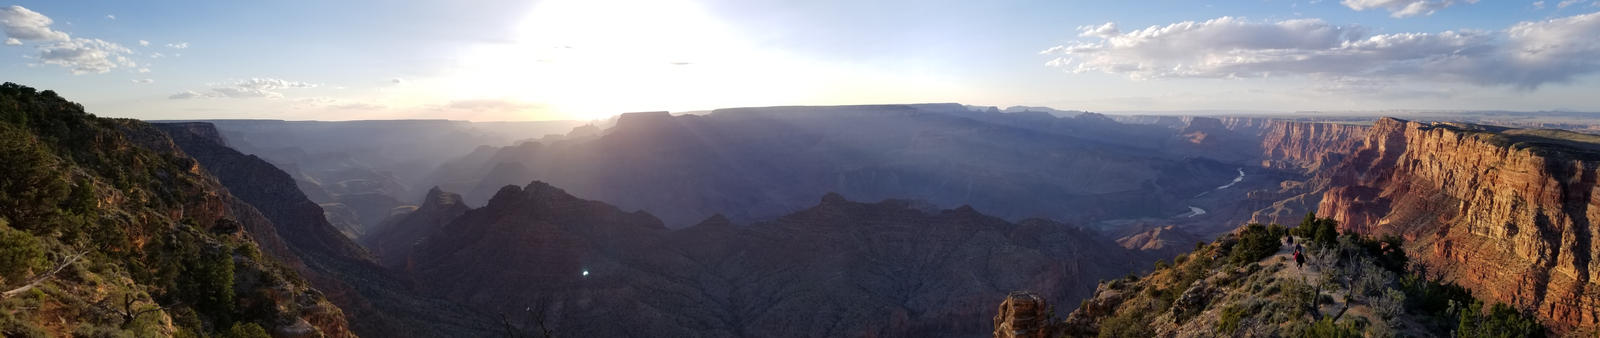 Grand Canyon: Desert View by DreamingFoxfire